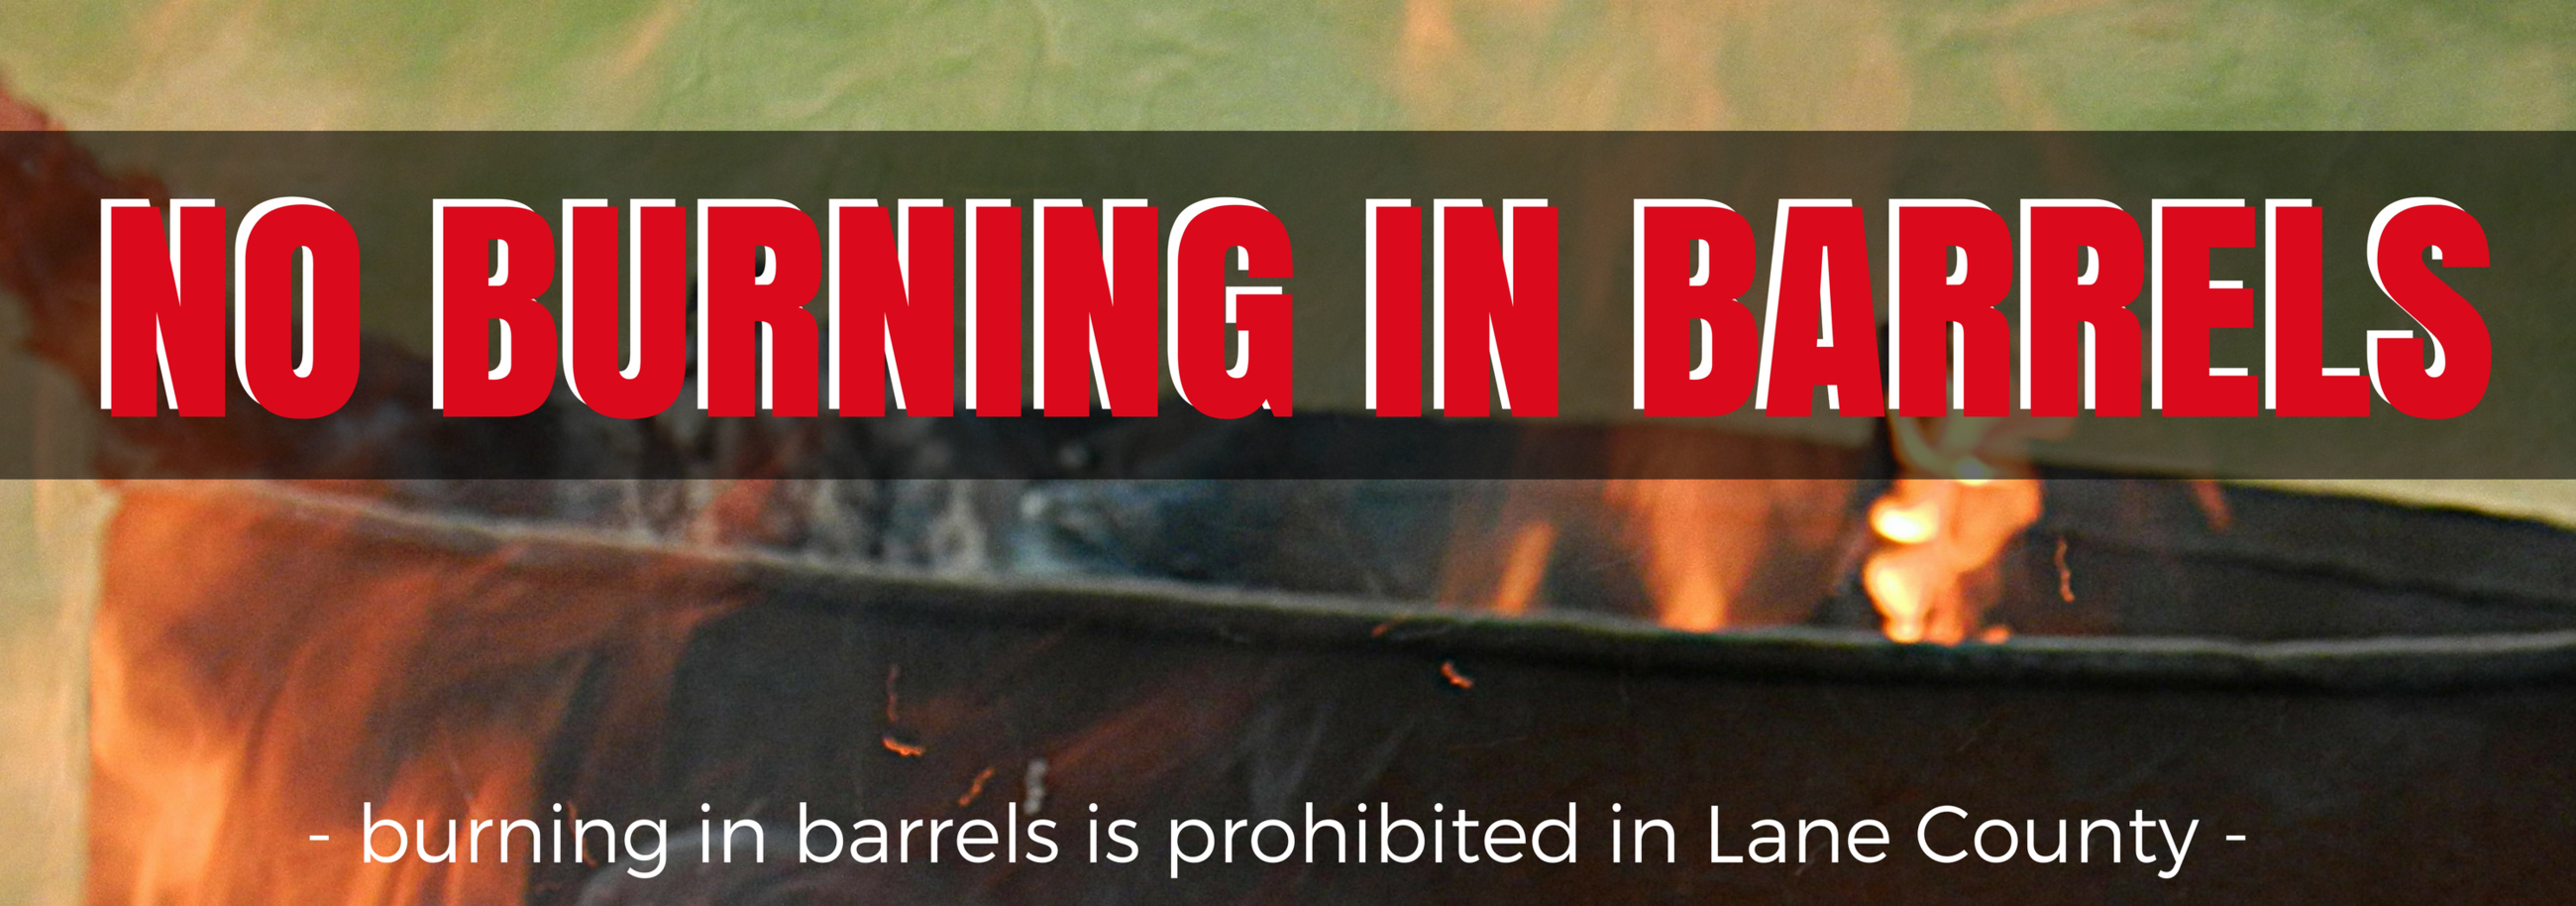 no burning in barrels